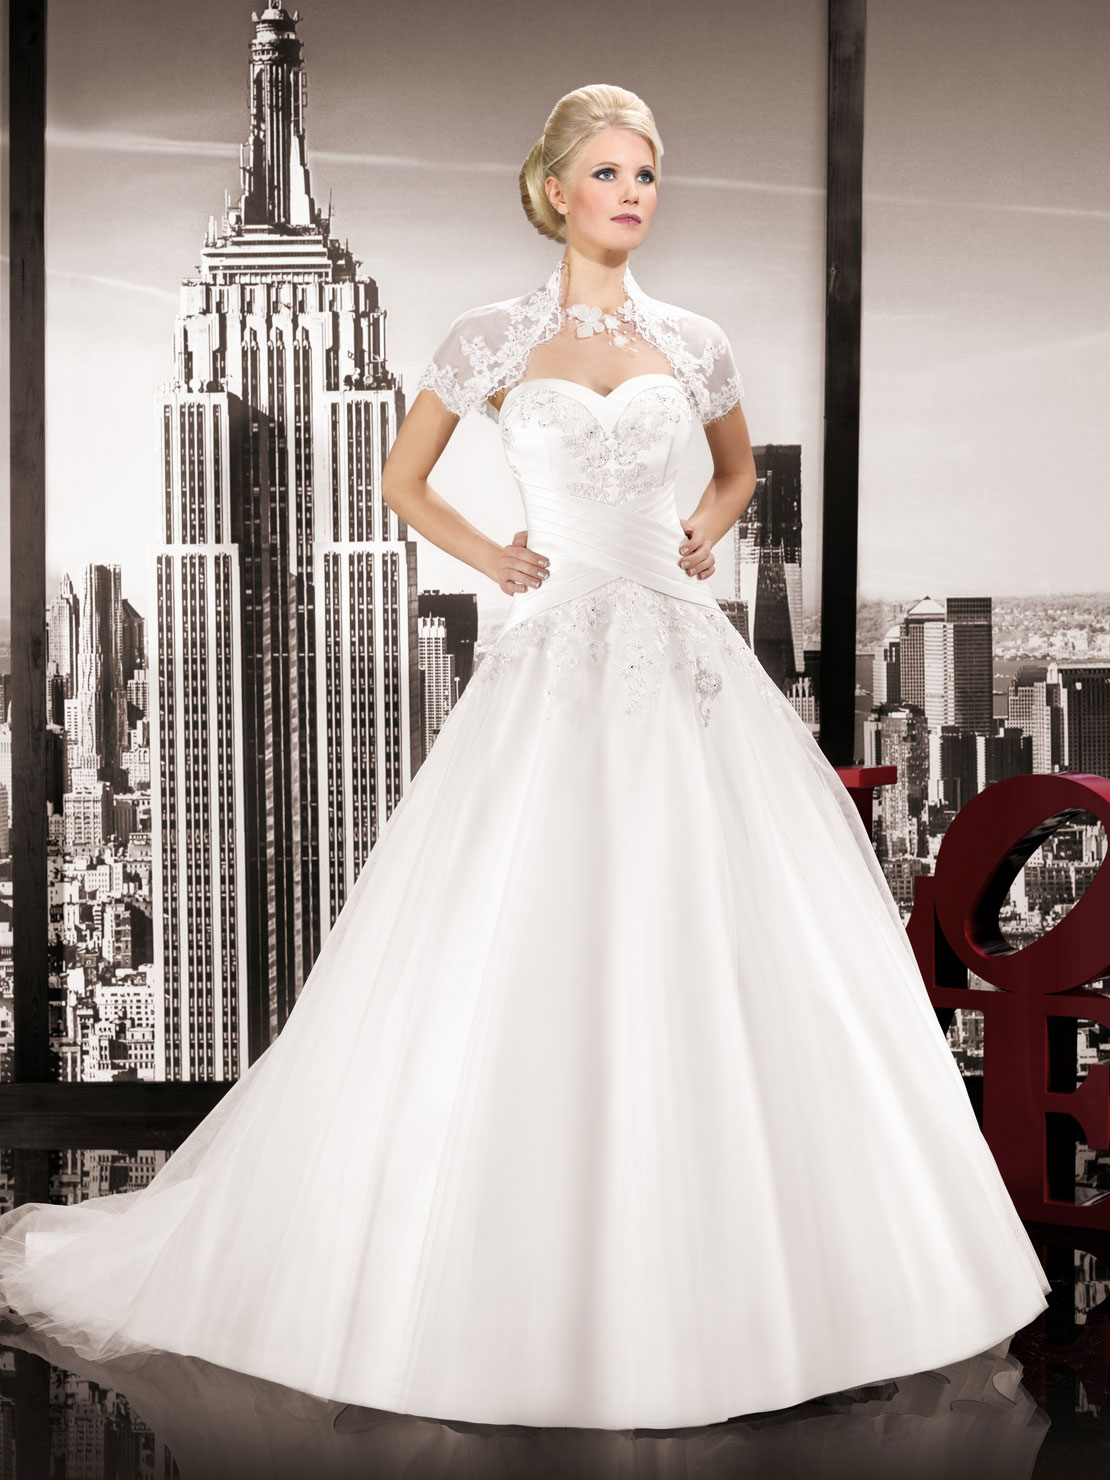 301 moved permanently for Wedding dress in paris